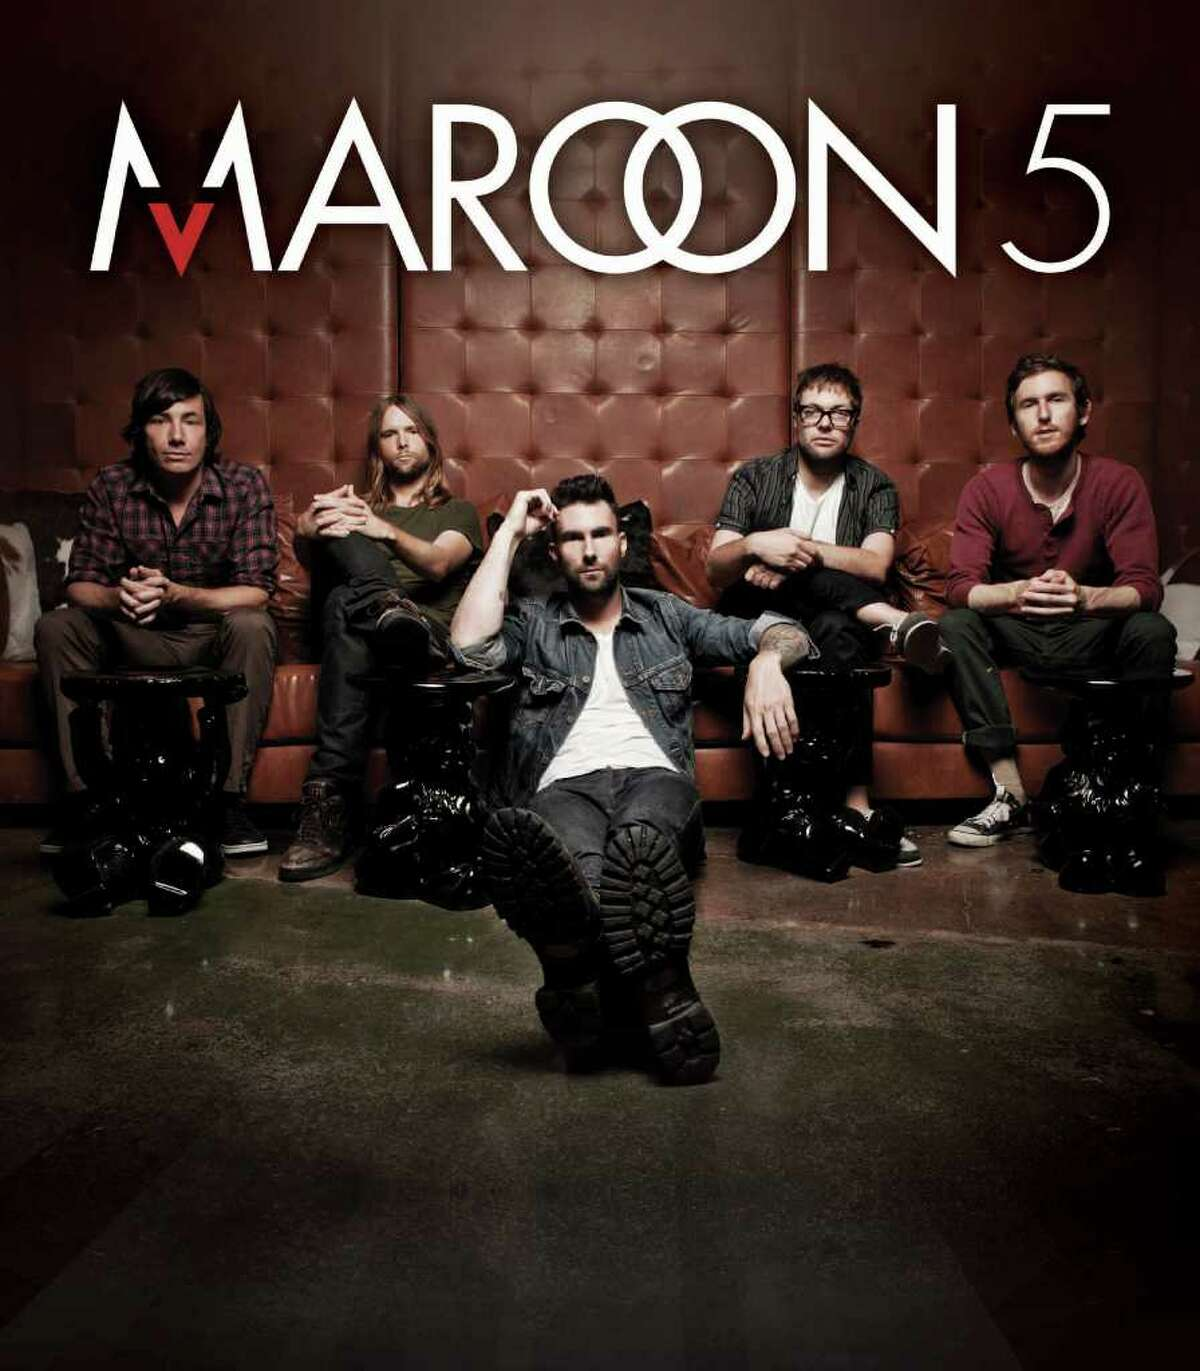 Maroon 5 will perform at Foxwoodís MGM Grand Theater on Sunday, Aug. 7, at 7 p.m.